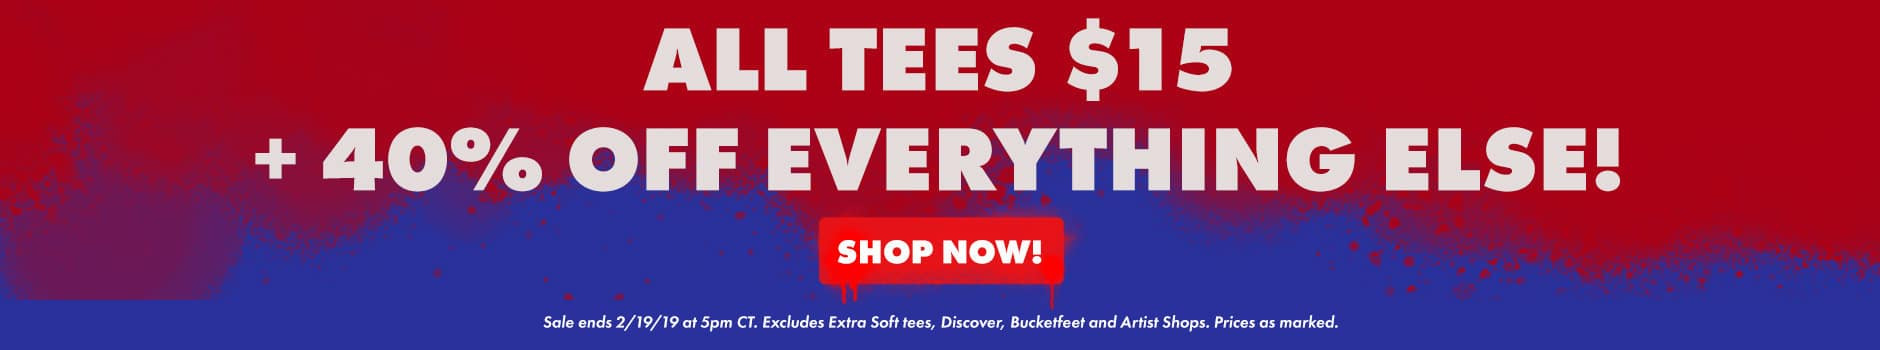 Shop the President's Day Sale Extended